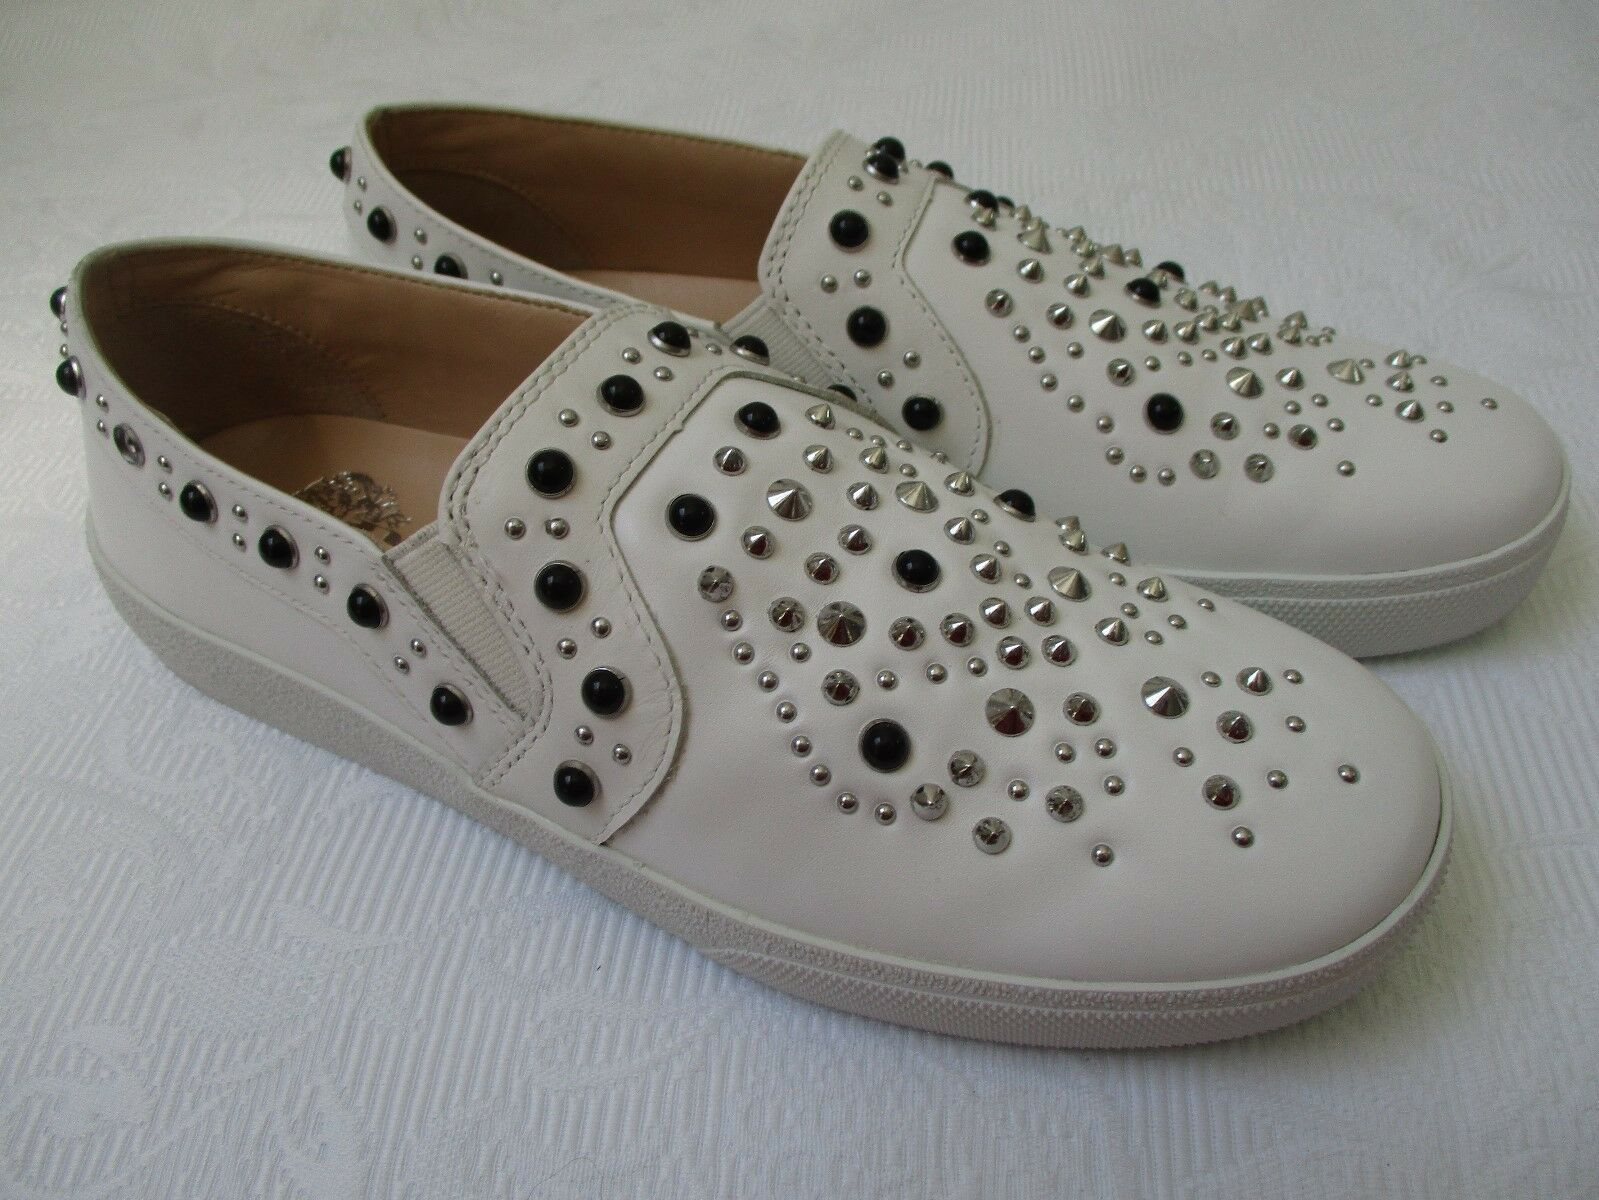 VINCE CAMUTO CASINTIA MILK NEW CENTURY STUDDED LEATHER SHOES SIZE 7 1/2 M - NEW